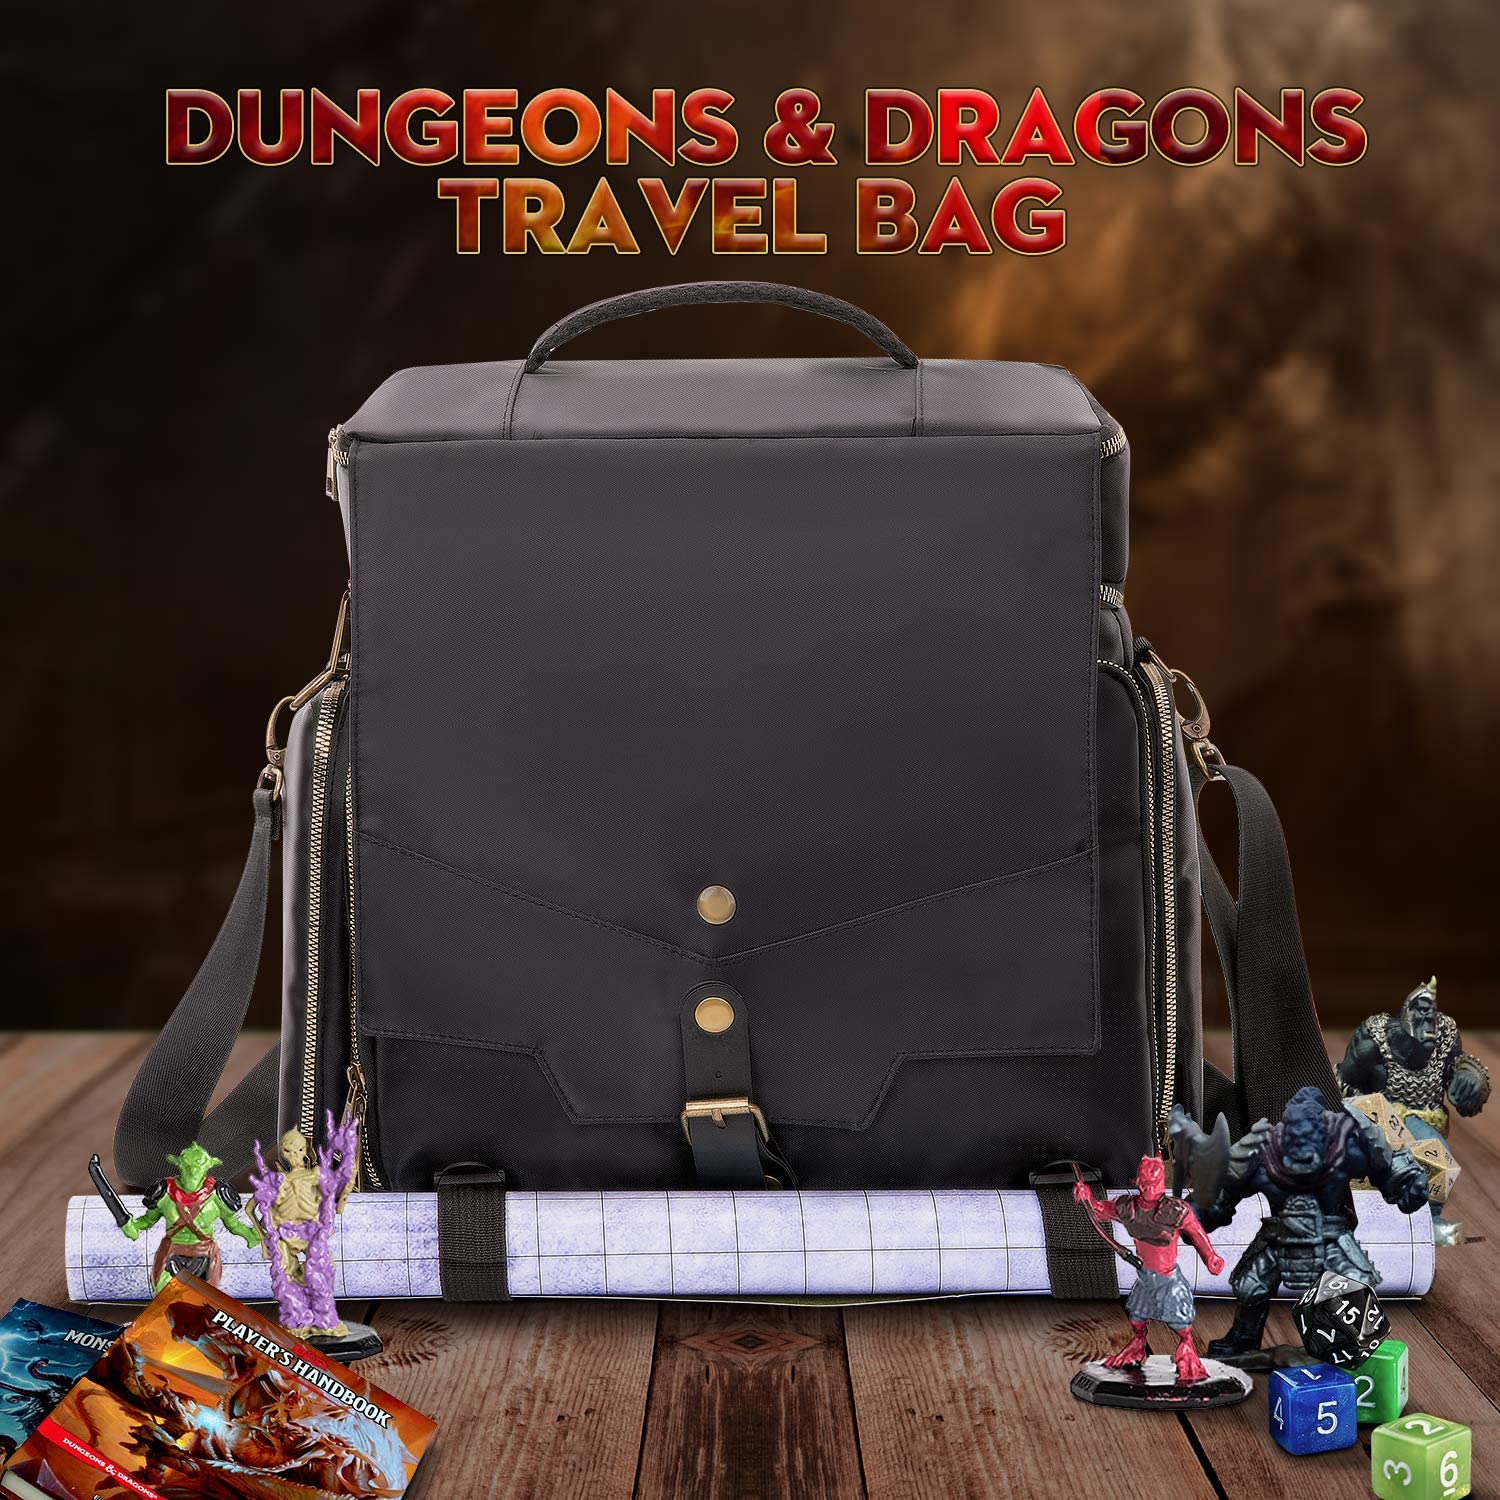 Small DND Bag fits RPG Player Essentials Players Handbook Mini Player Items(Bag Only) Tokens Character Sheets Dice TRAVEASE Travel Bag Compatible with Dungeons and Dragons Accessories